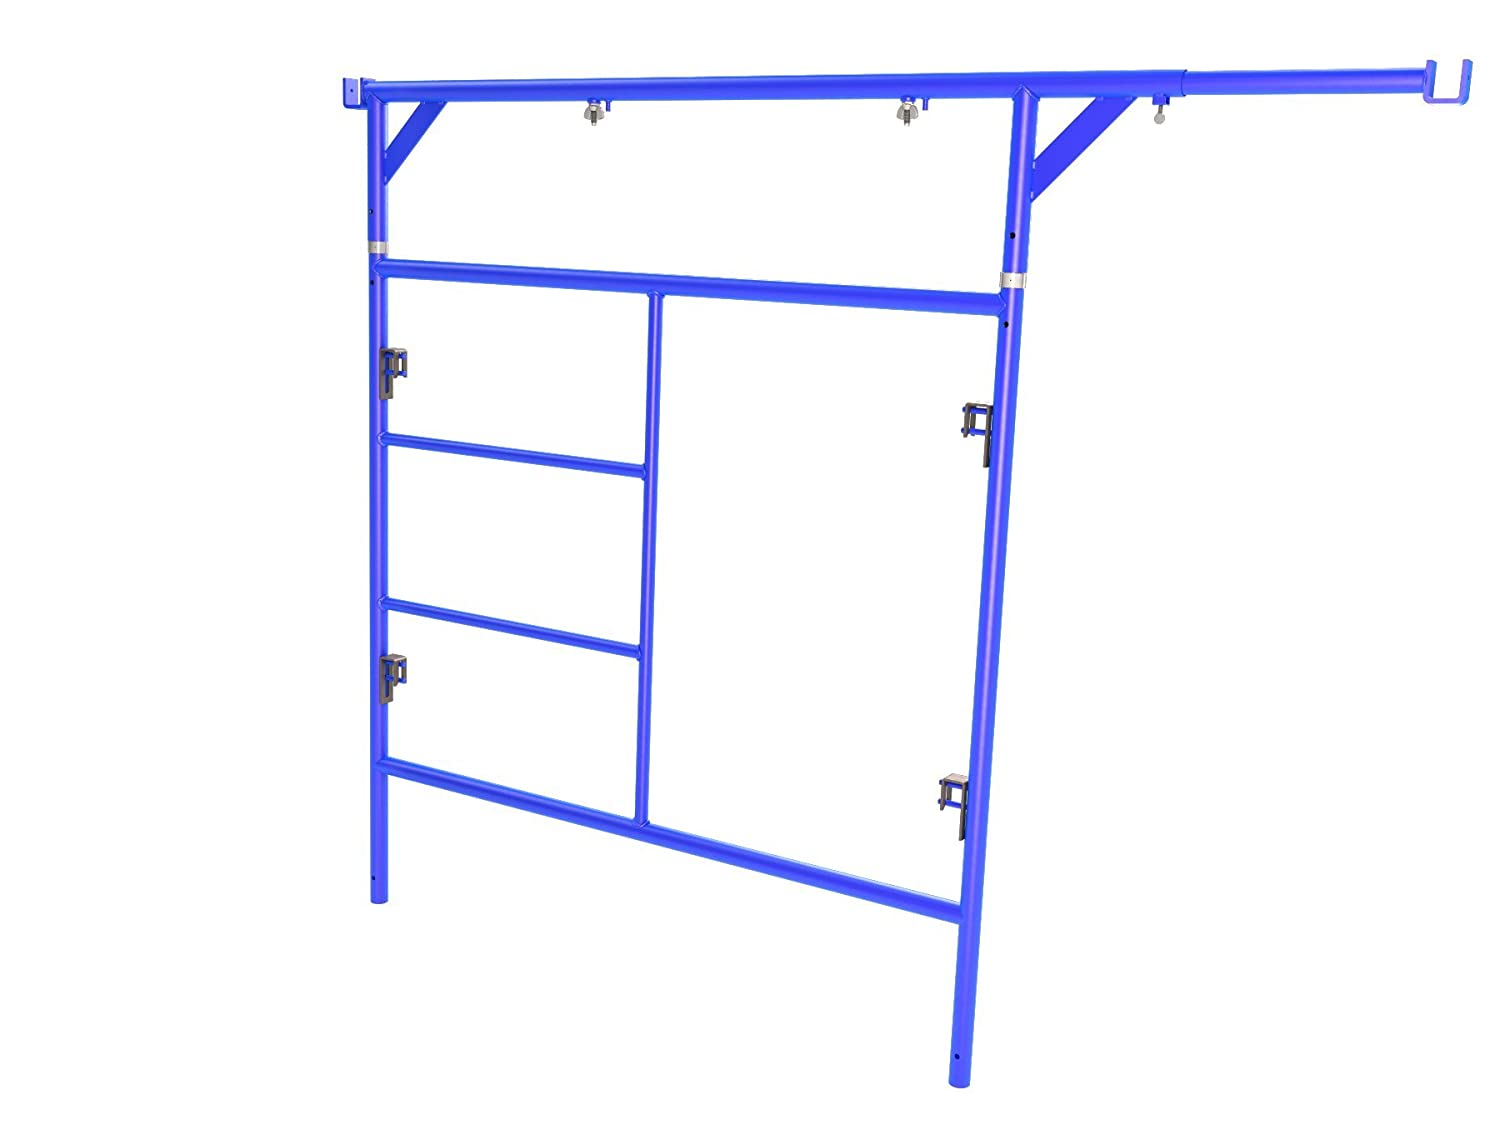 Bon 14-885 Canopy Top for Scaffold End Frames